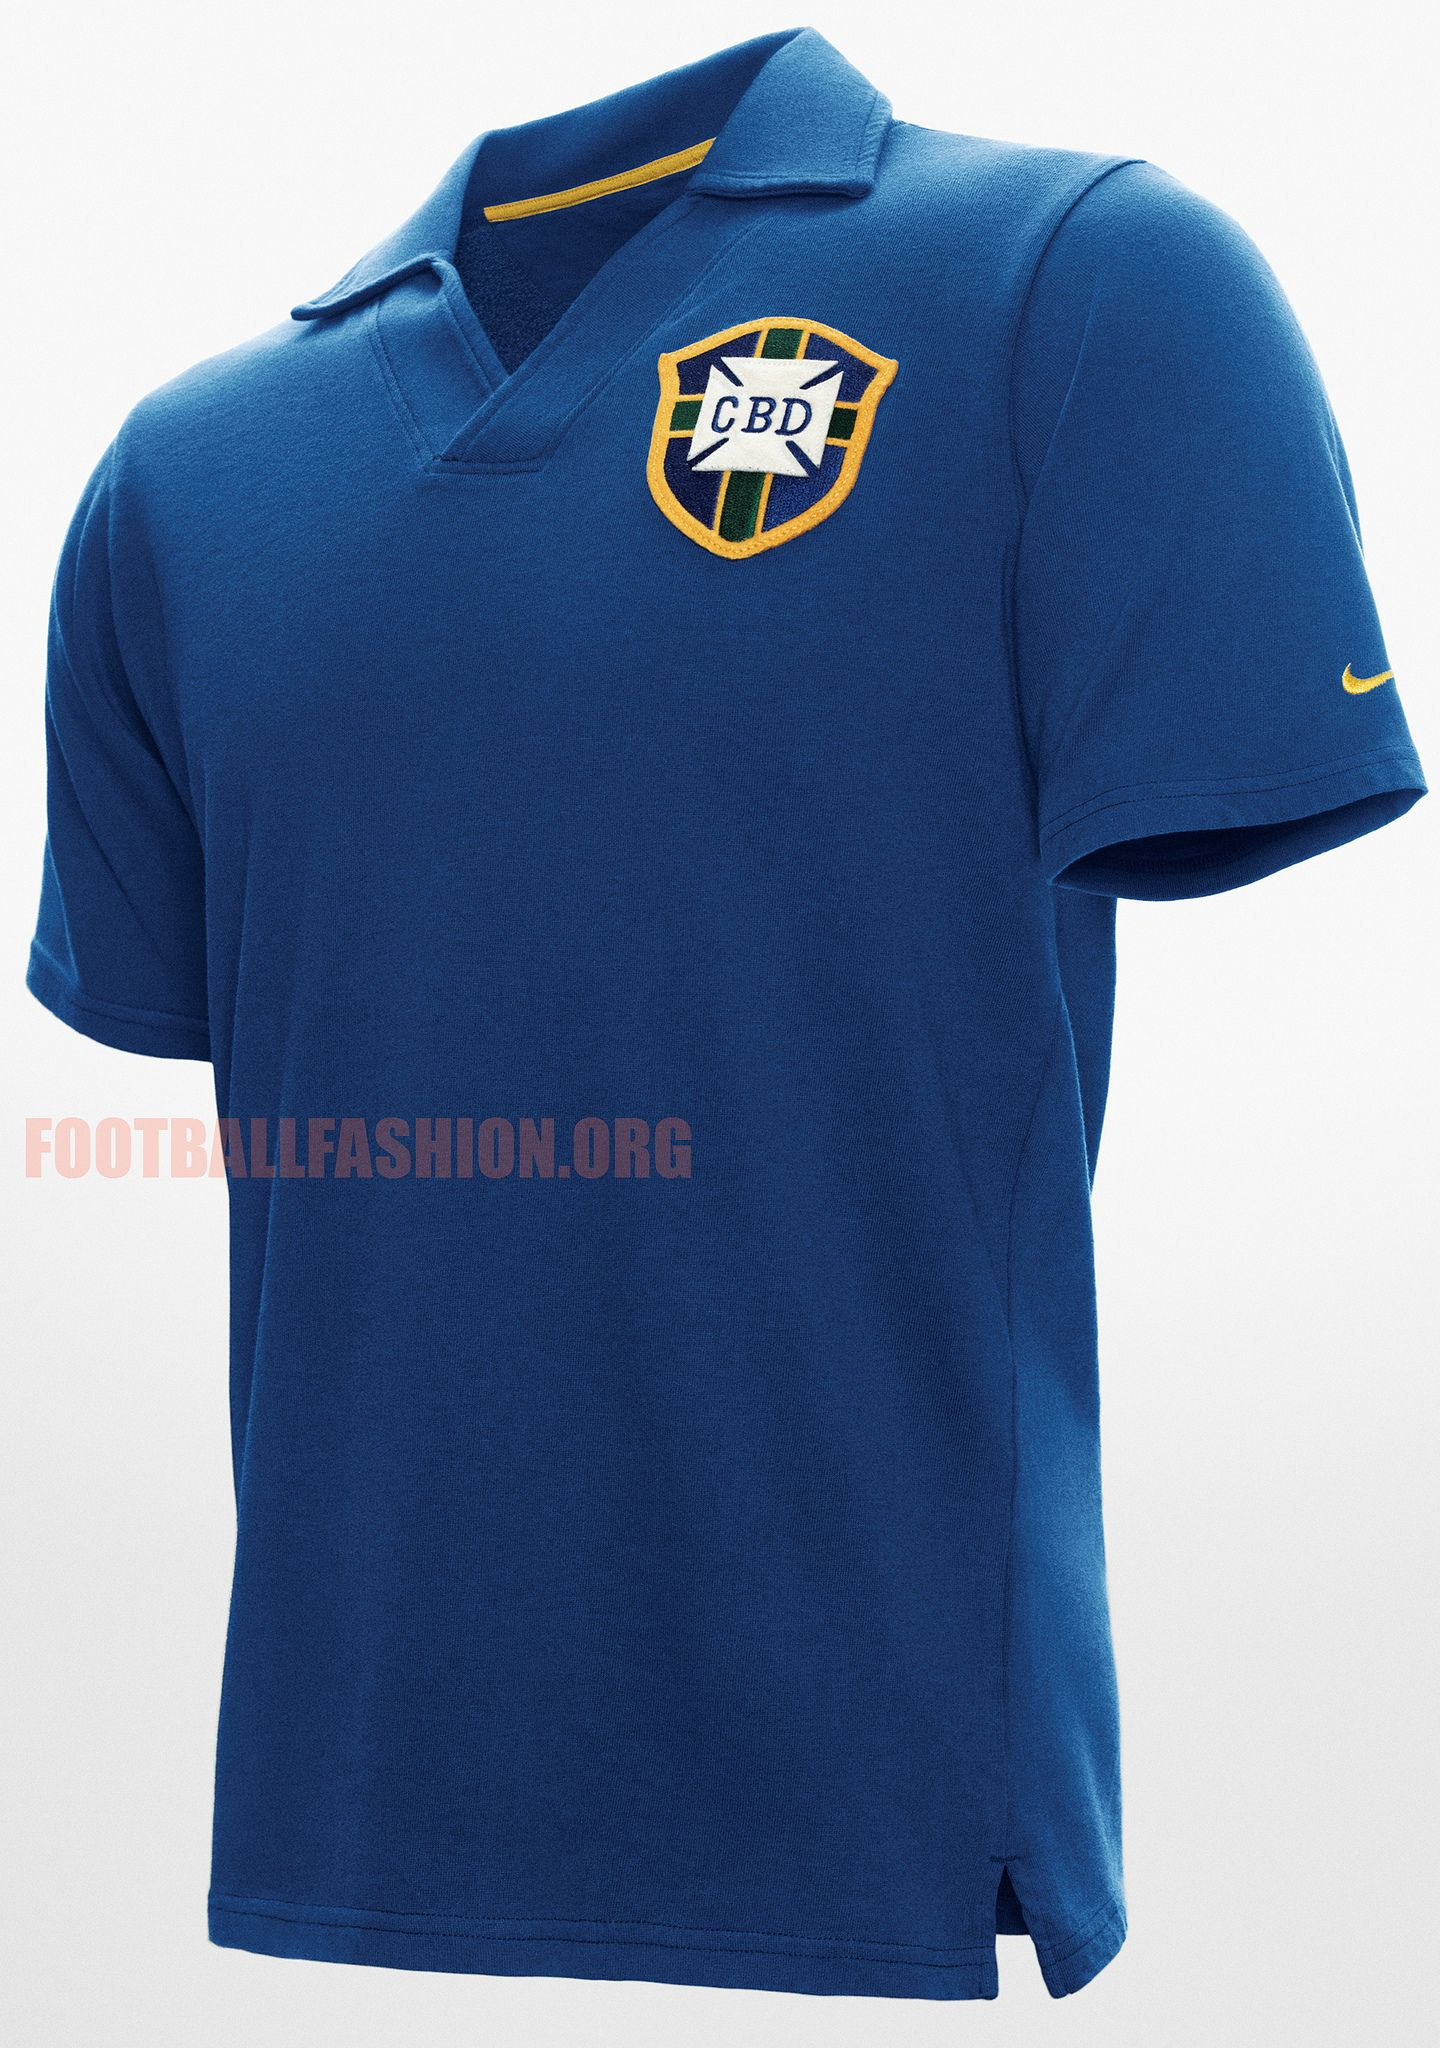 08da499c4 Brazil Nike 1958 World Cup Commemorative Jersey